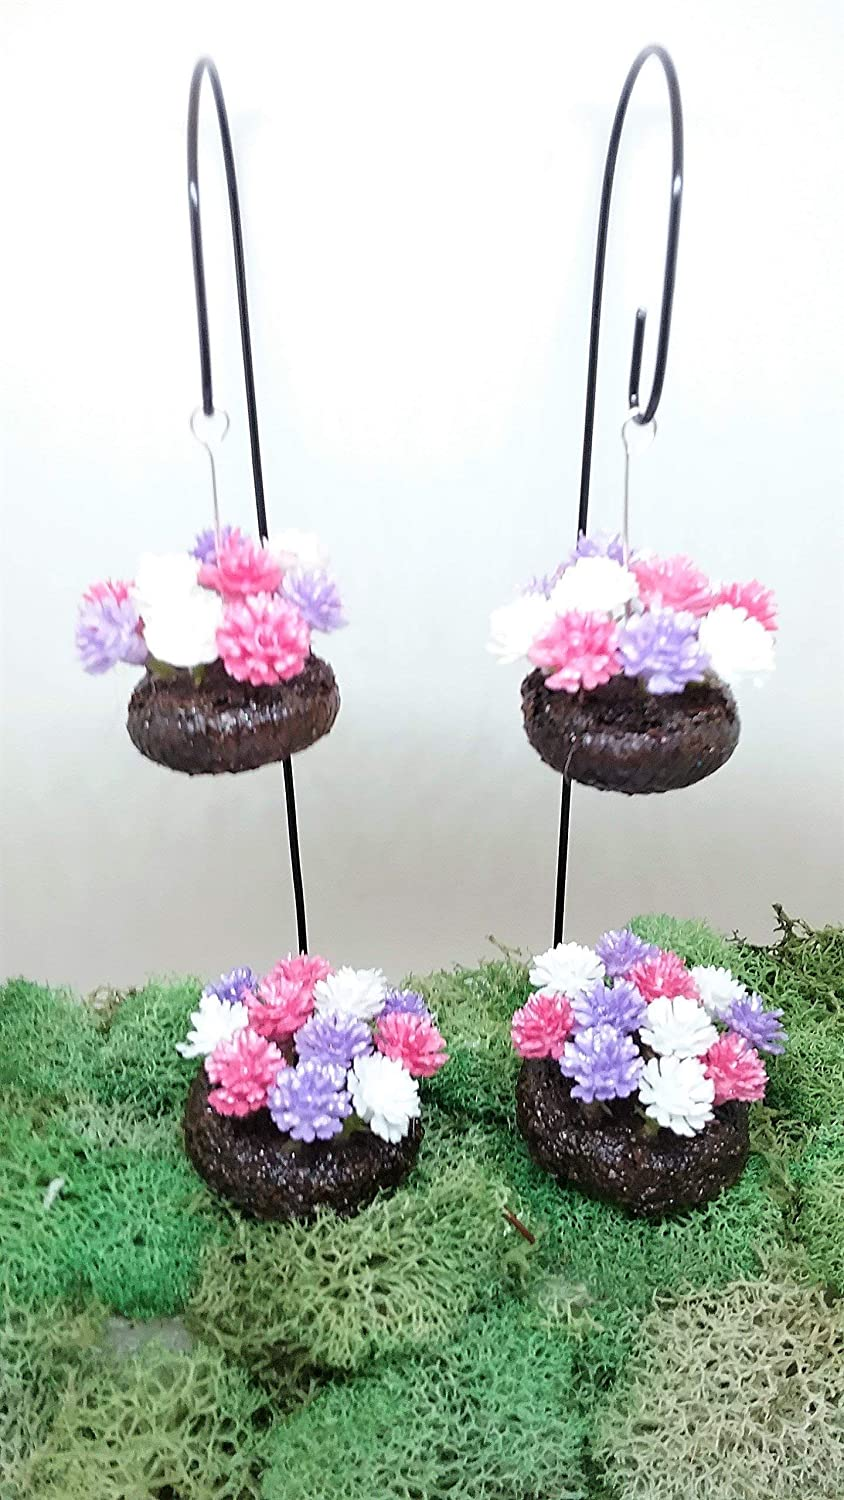 Pink Purple White Set of 4 Mini Hanging Baskets and Round Flower Beds Fairy Garden Accessories